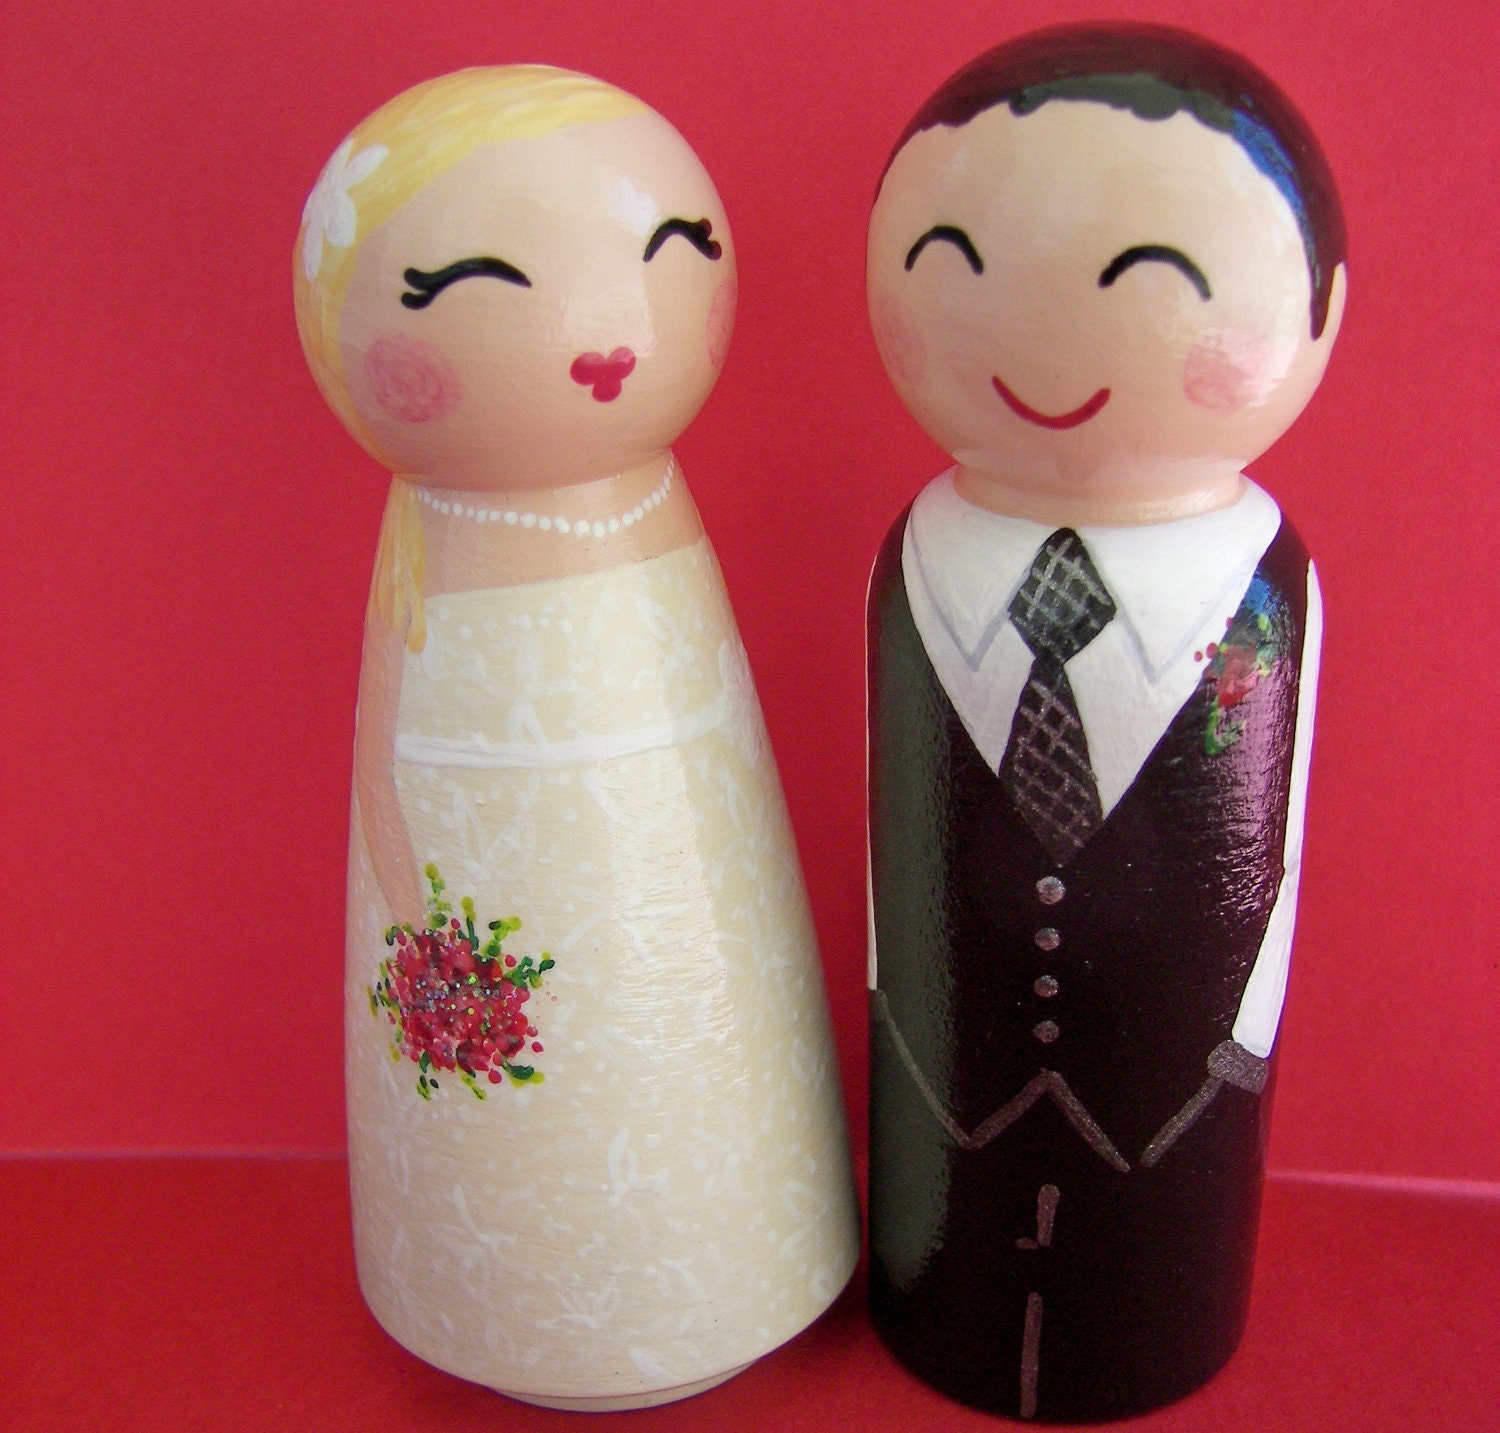 Information for Custom Wedding Cake Toppers Photos are preferred when they